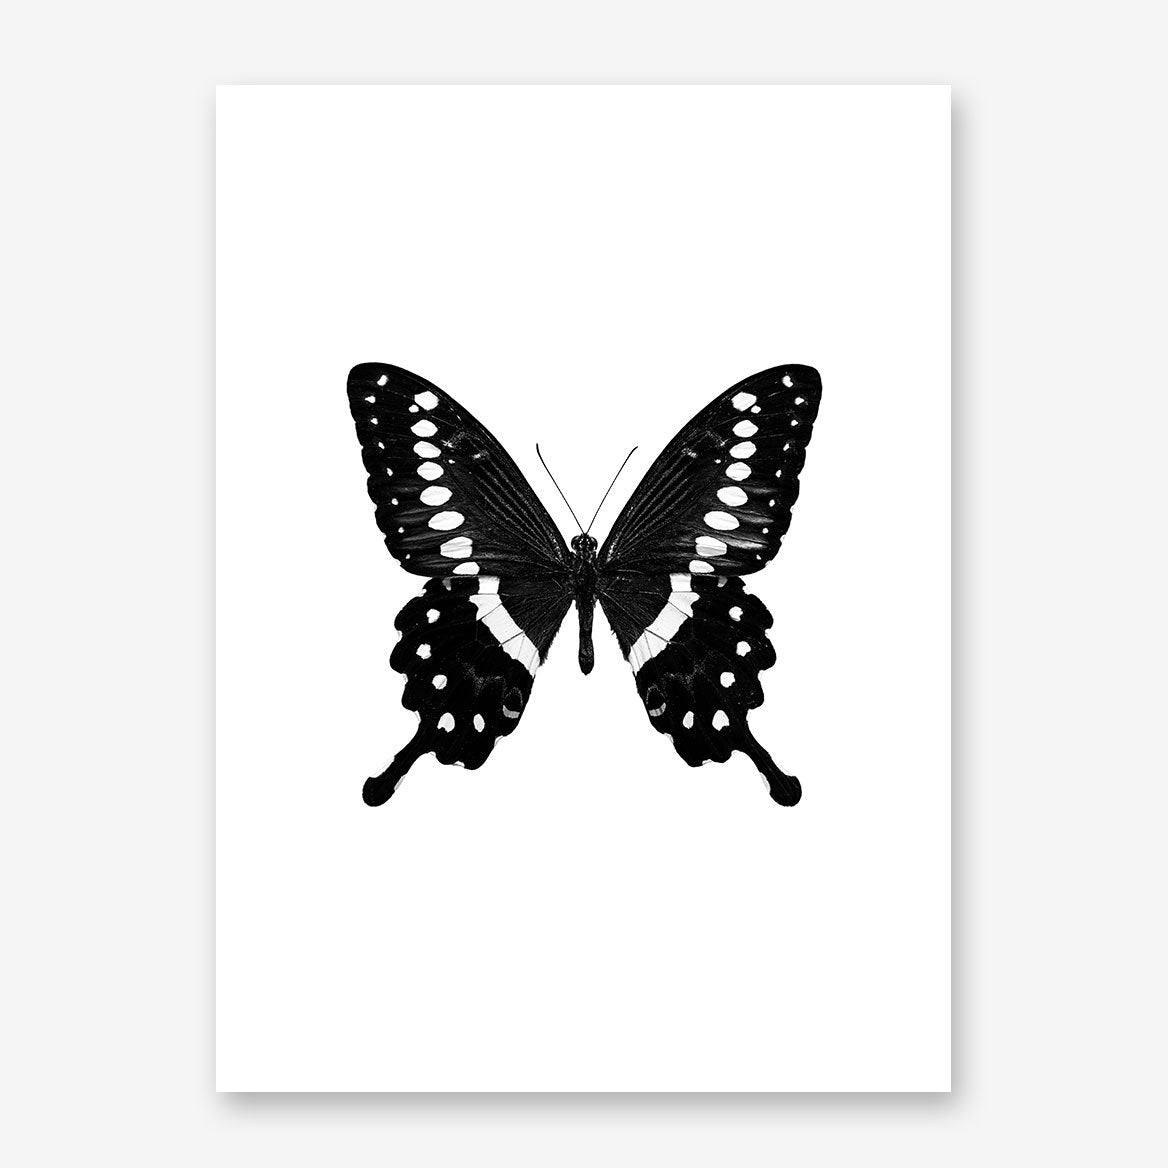 Gorgeous poster print with a black and white butterfly on white background.